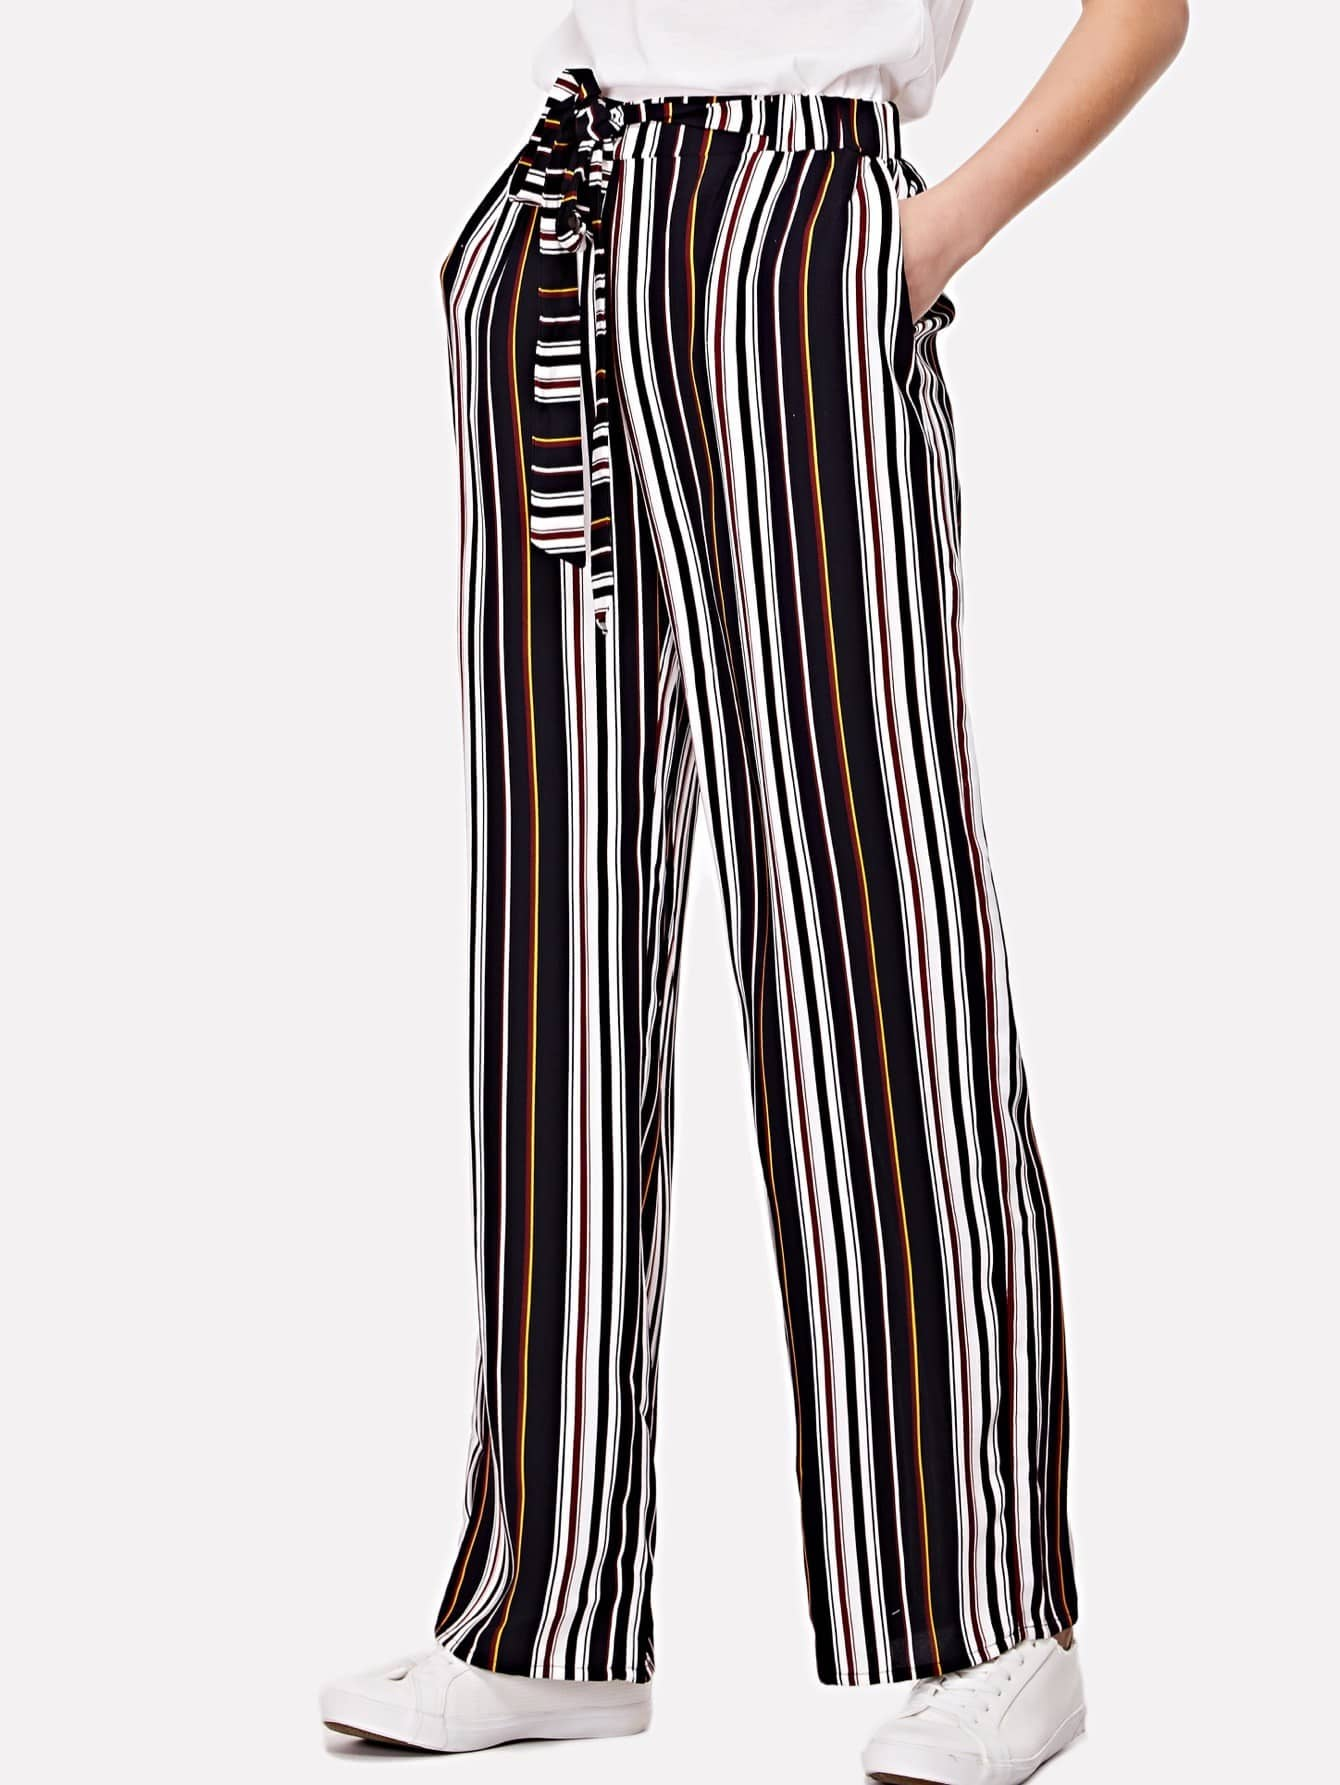 Knot Waist Striped Wide Leg Pants hot new g4 odc5 60vdc g4 odc5 60vdc odc5 60vdc dip4 free shipping